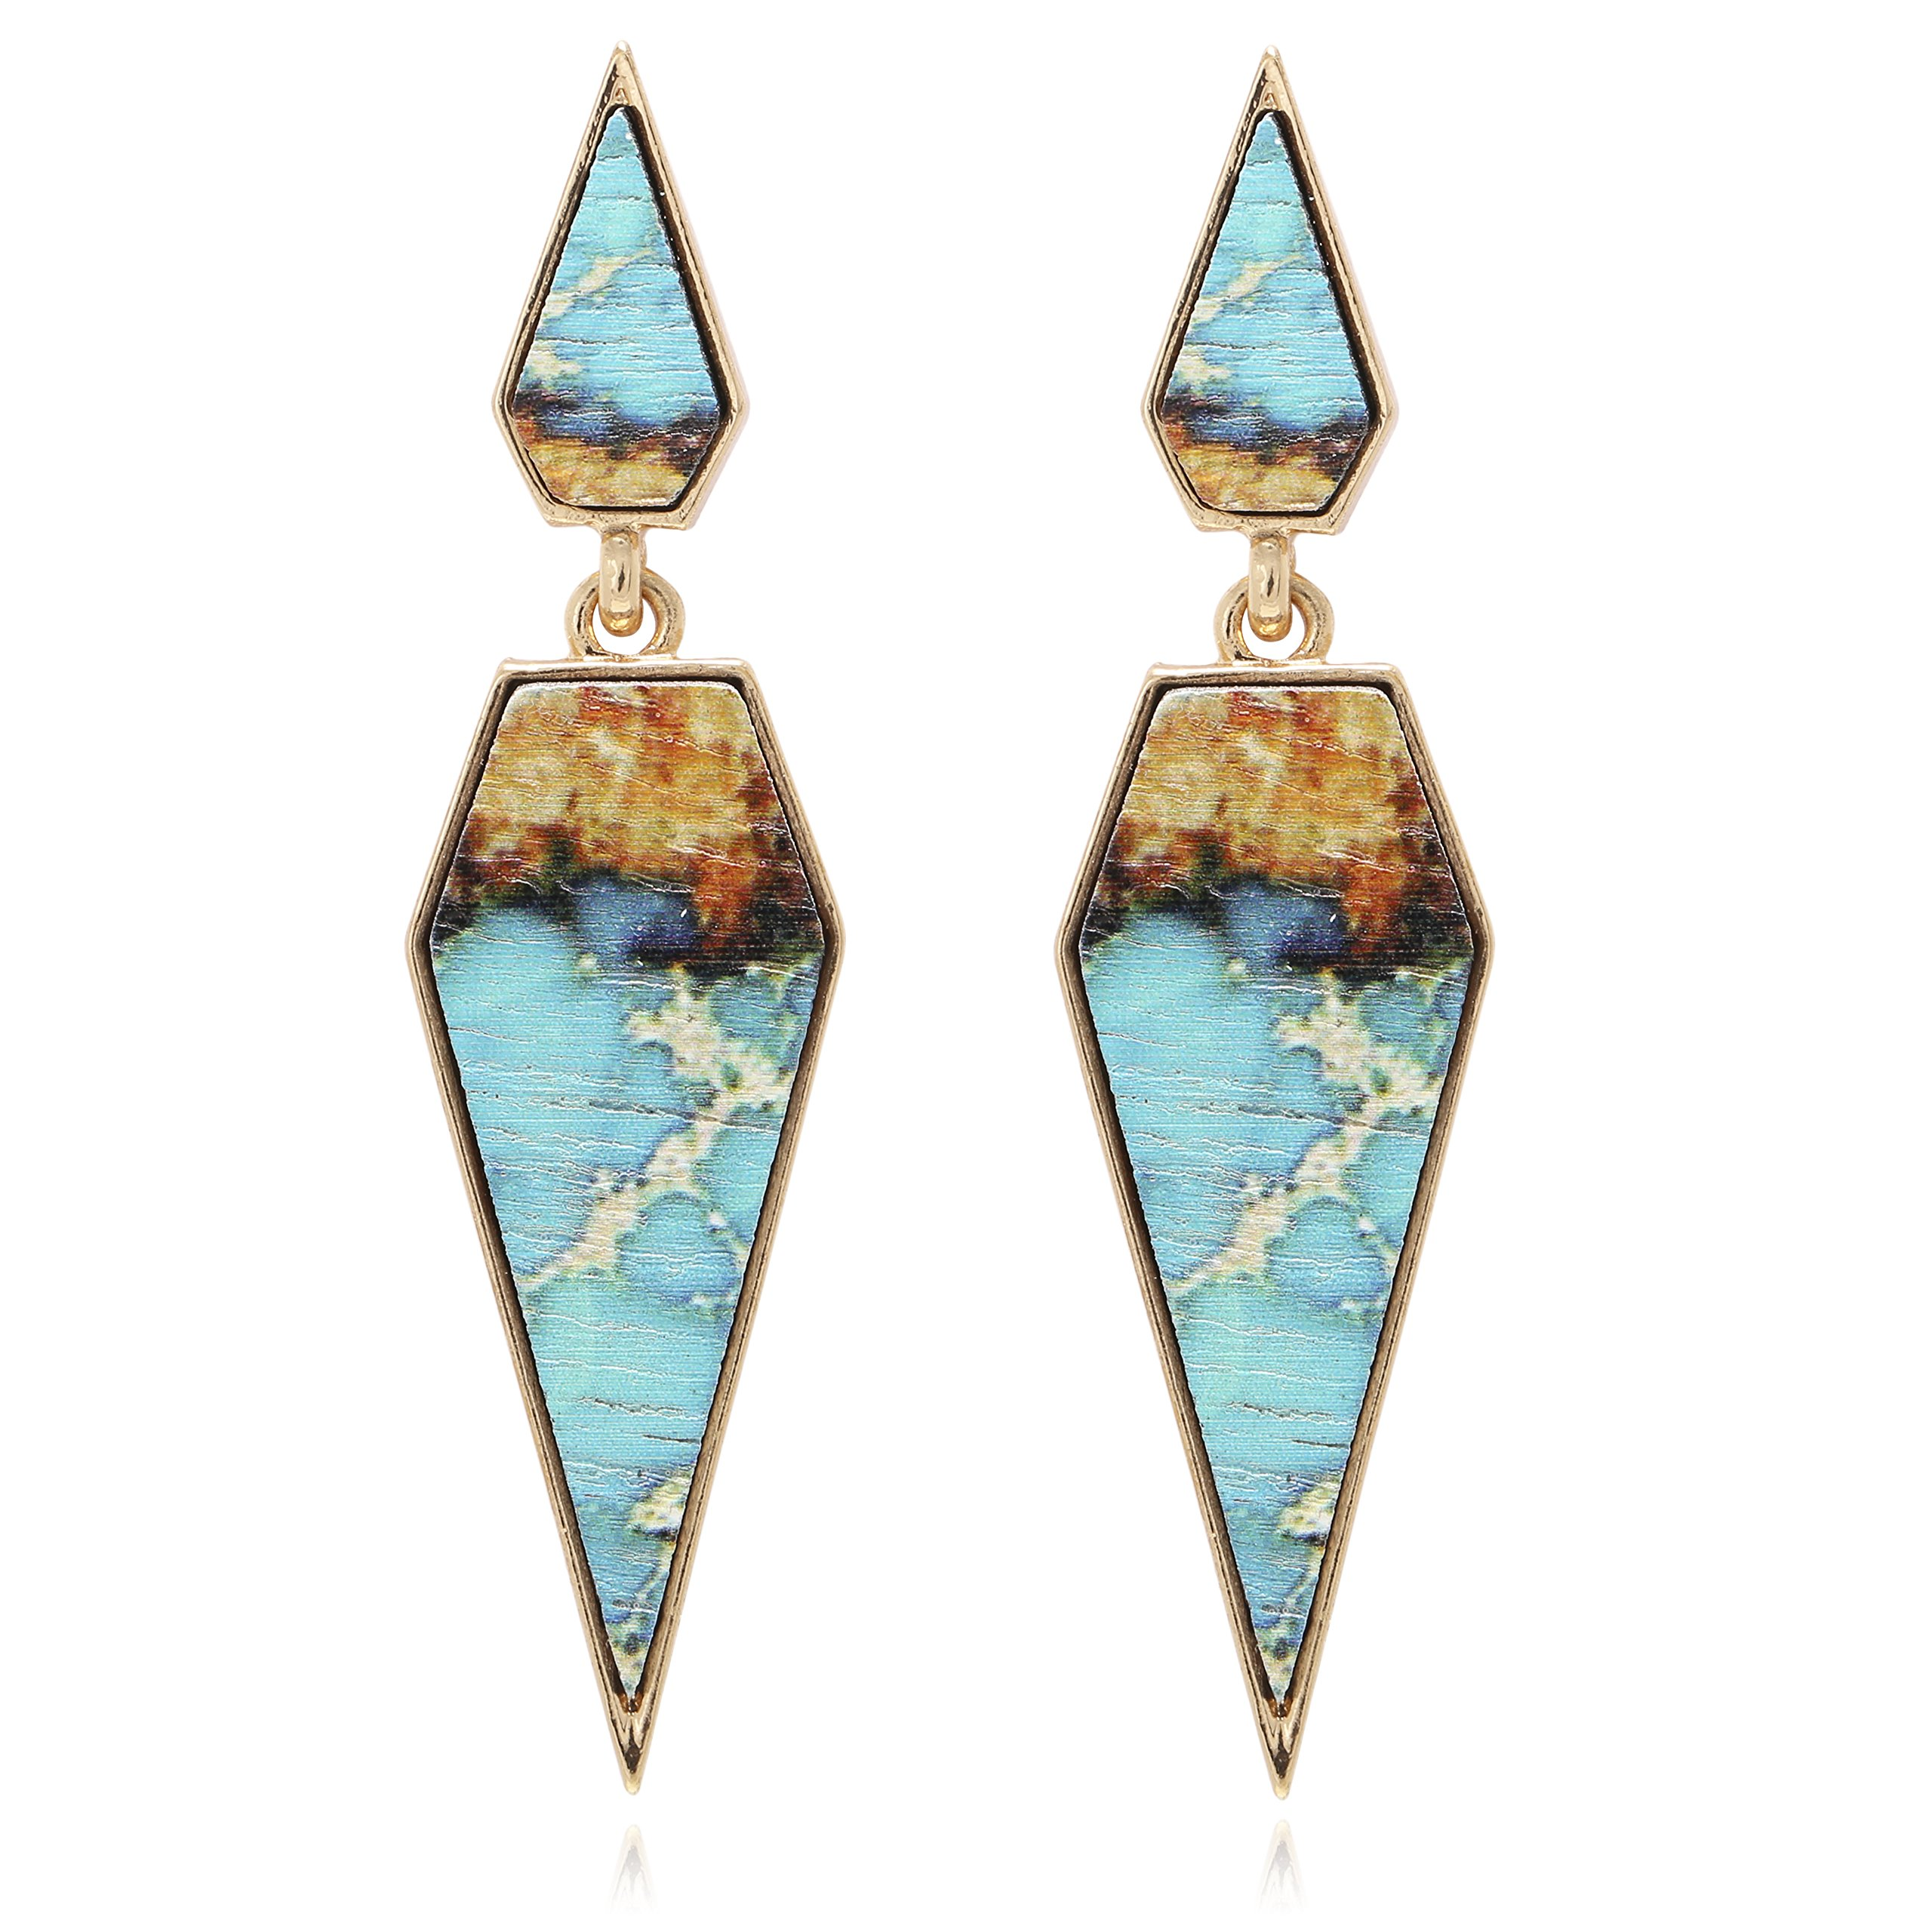 Bohemian Wood And Marble Effect Pentagon Shaped Drop Statement Earrings by BONALUNA (Image #1)